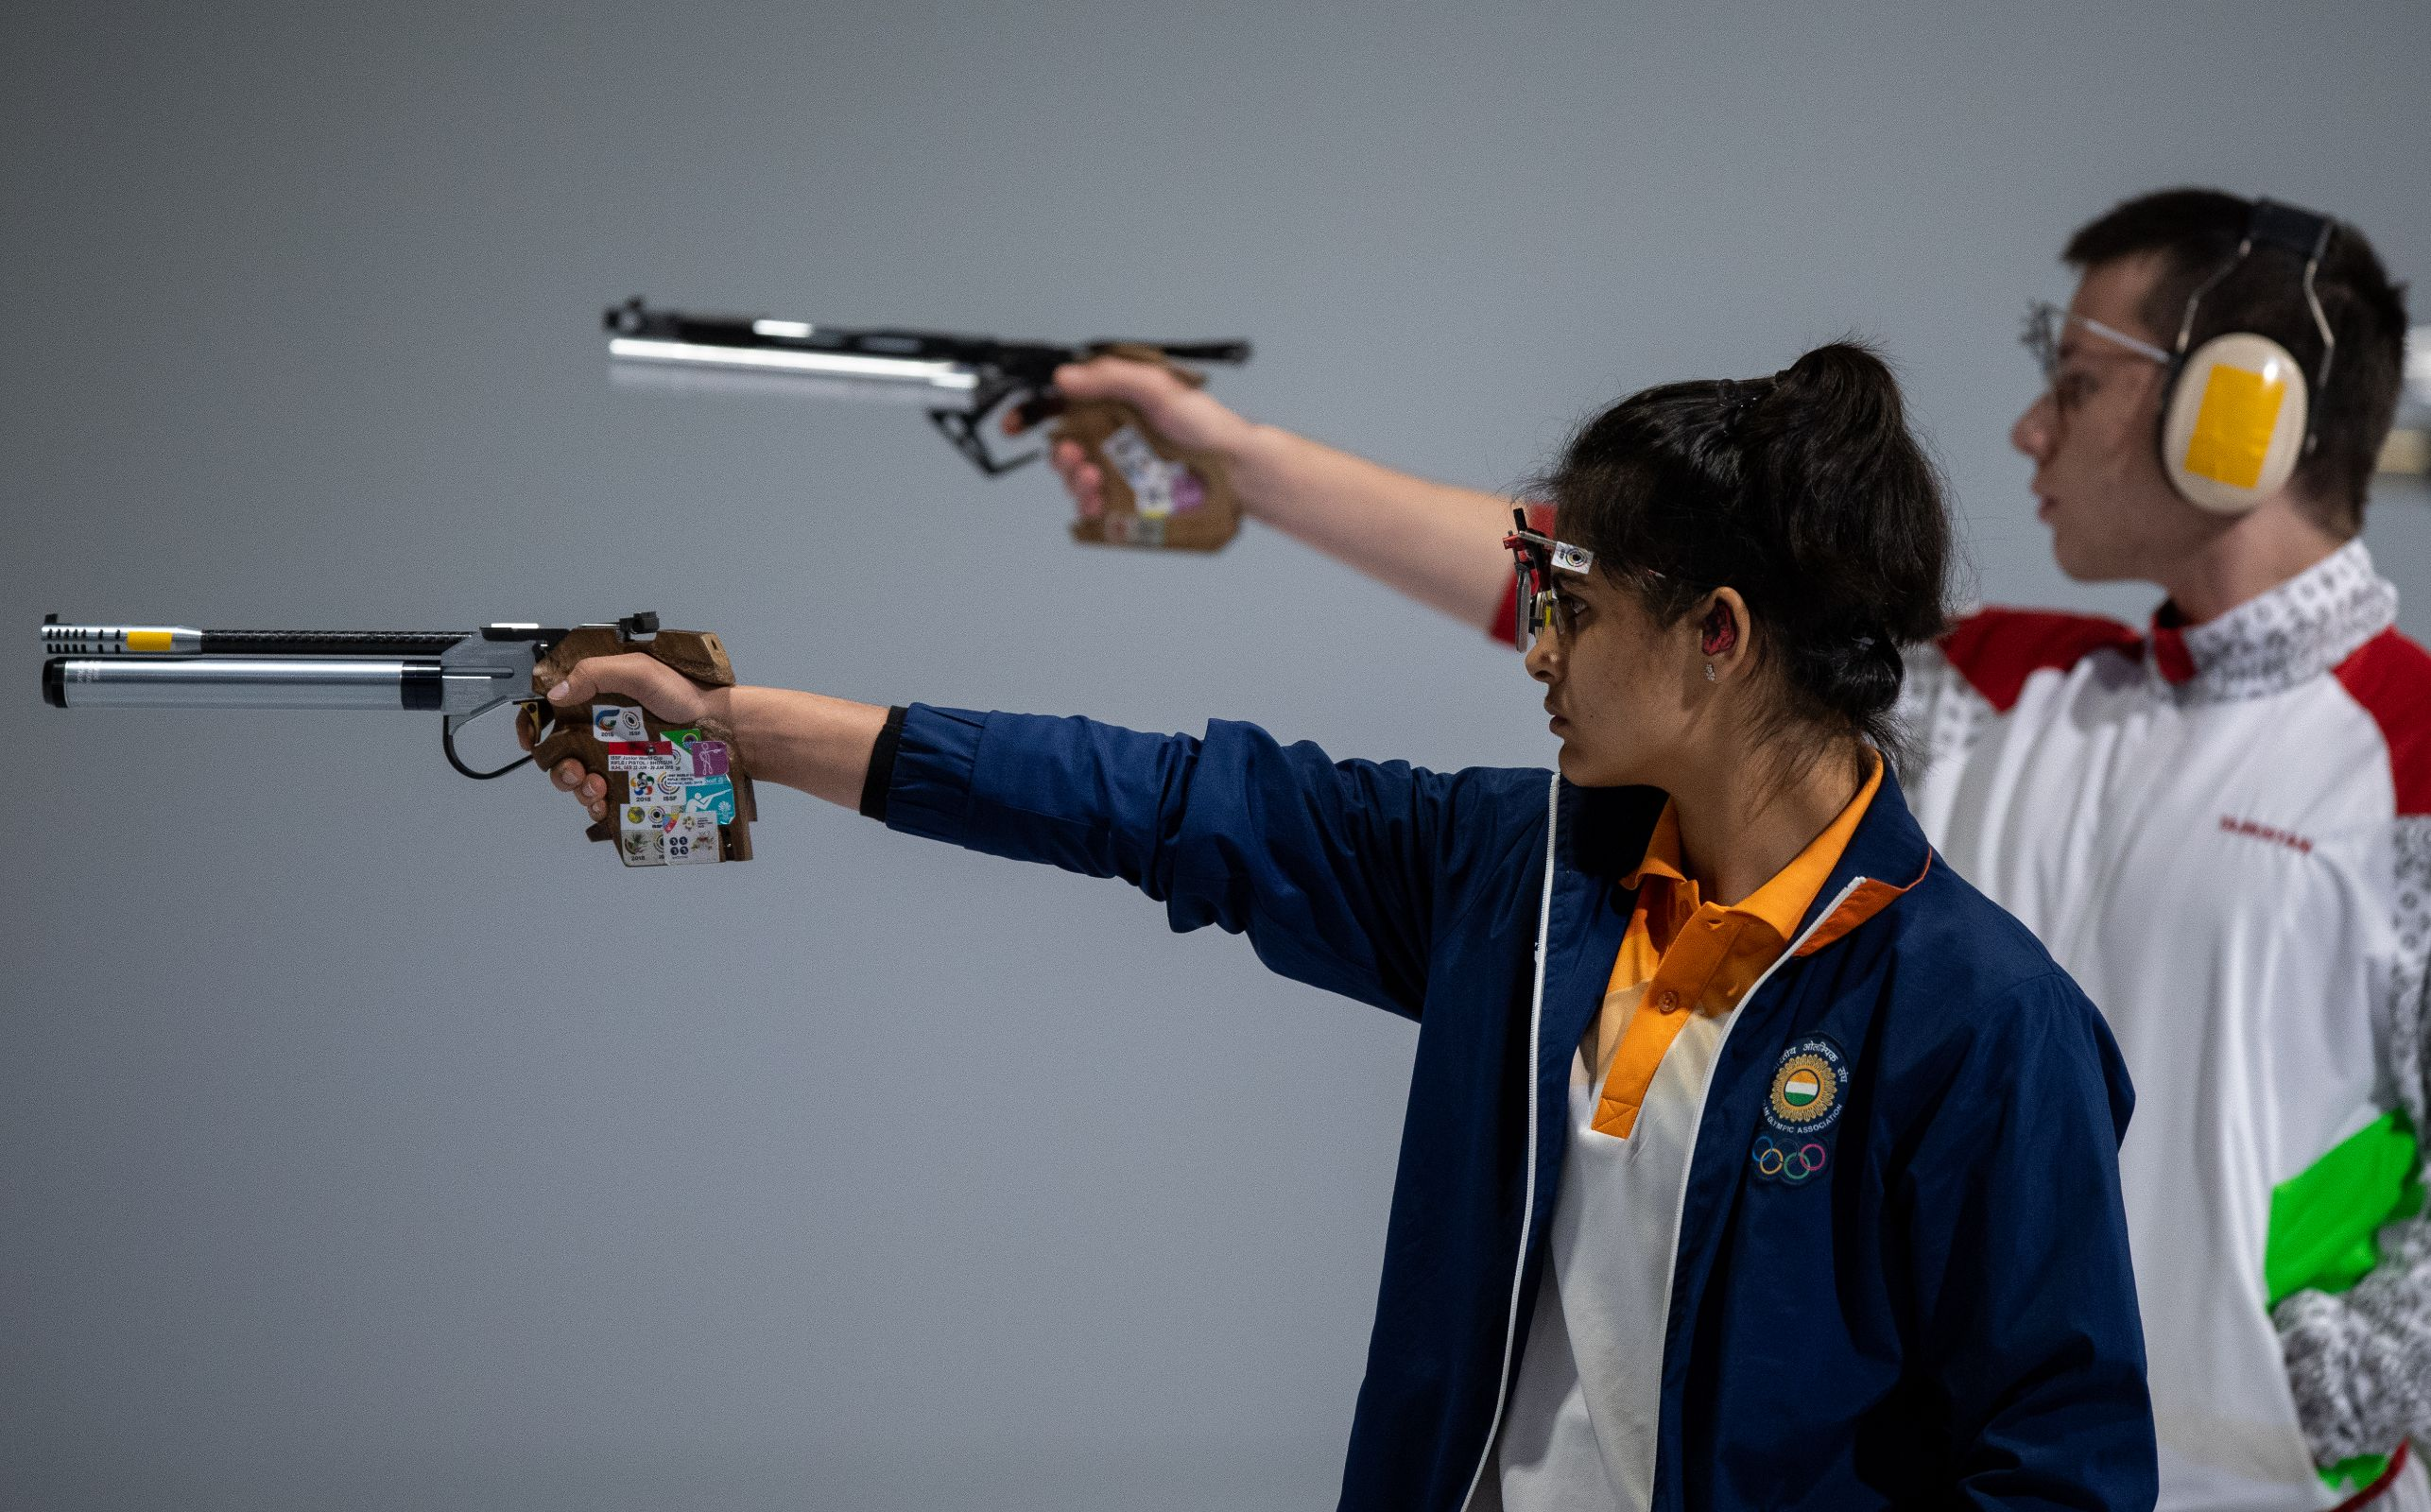 Buenos Aires 2018 - Shooting - 10m Air Pistol Mixed International Team